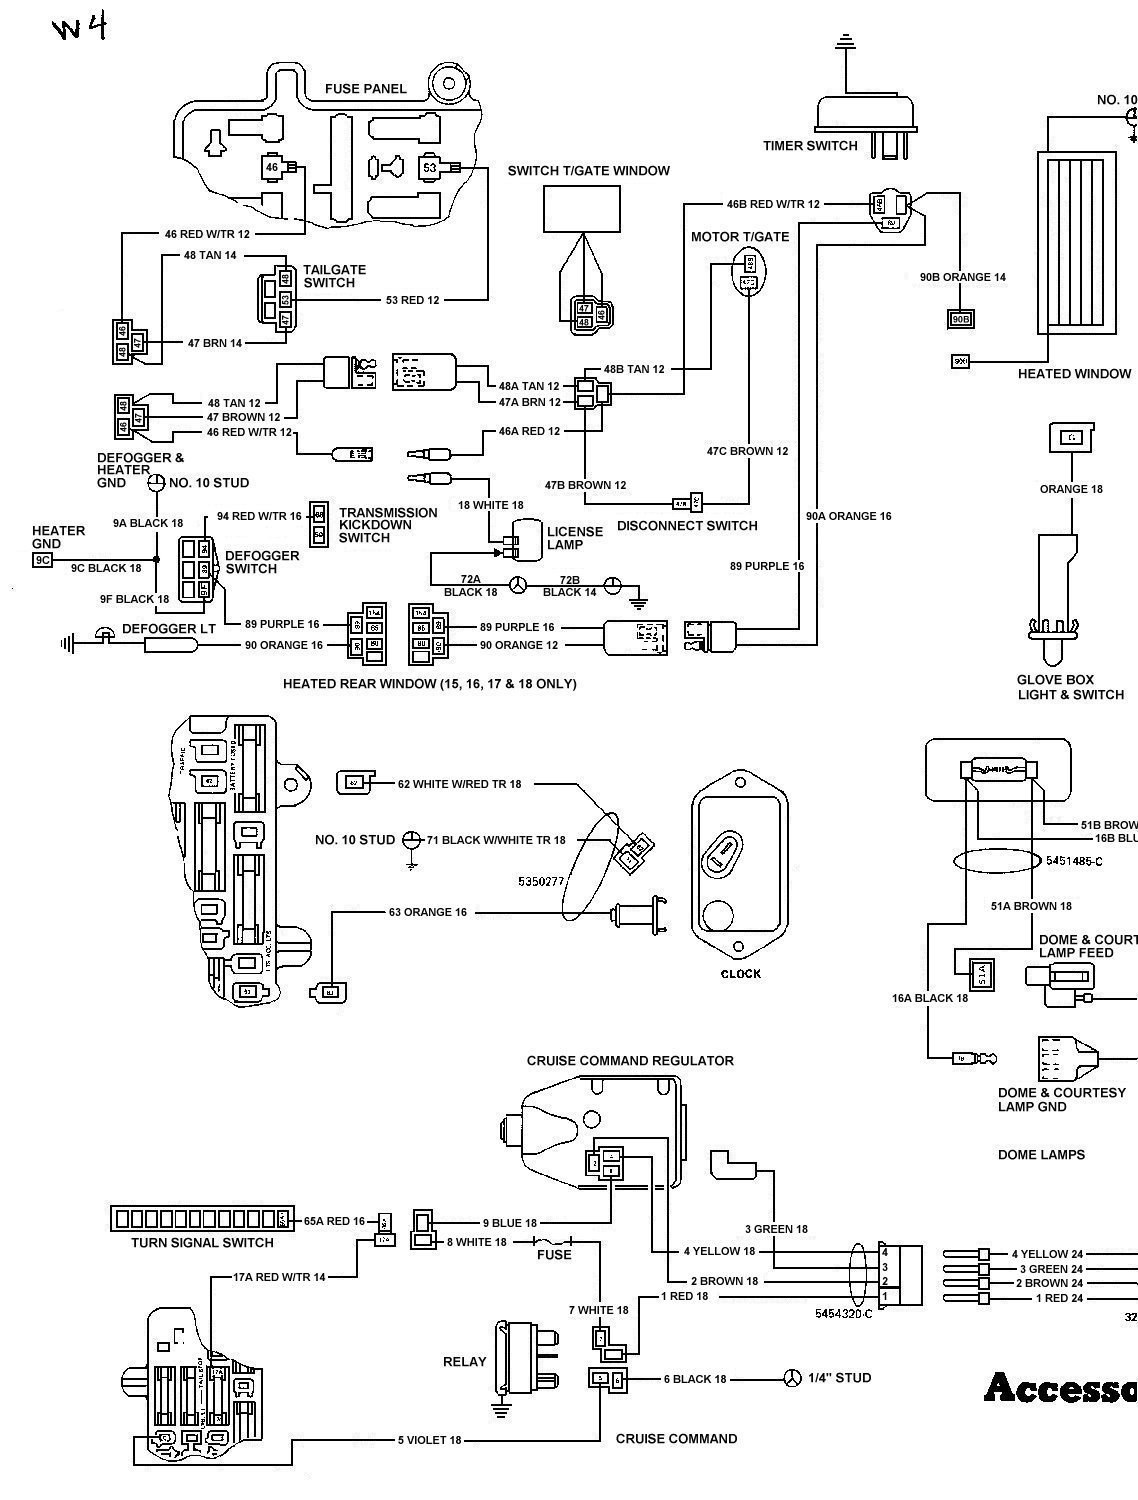 1993 Jeep Wrangler Cj Wiring List Of Schematic Circuit Diagram 2004 Grand Prix Turn Signal 1967 U2022 Rh Orionproject Co